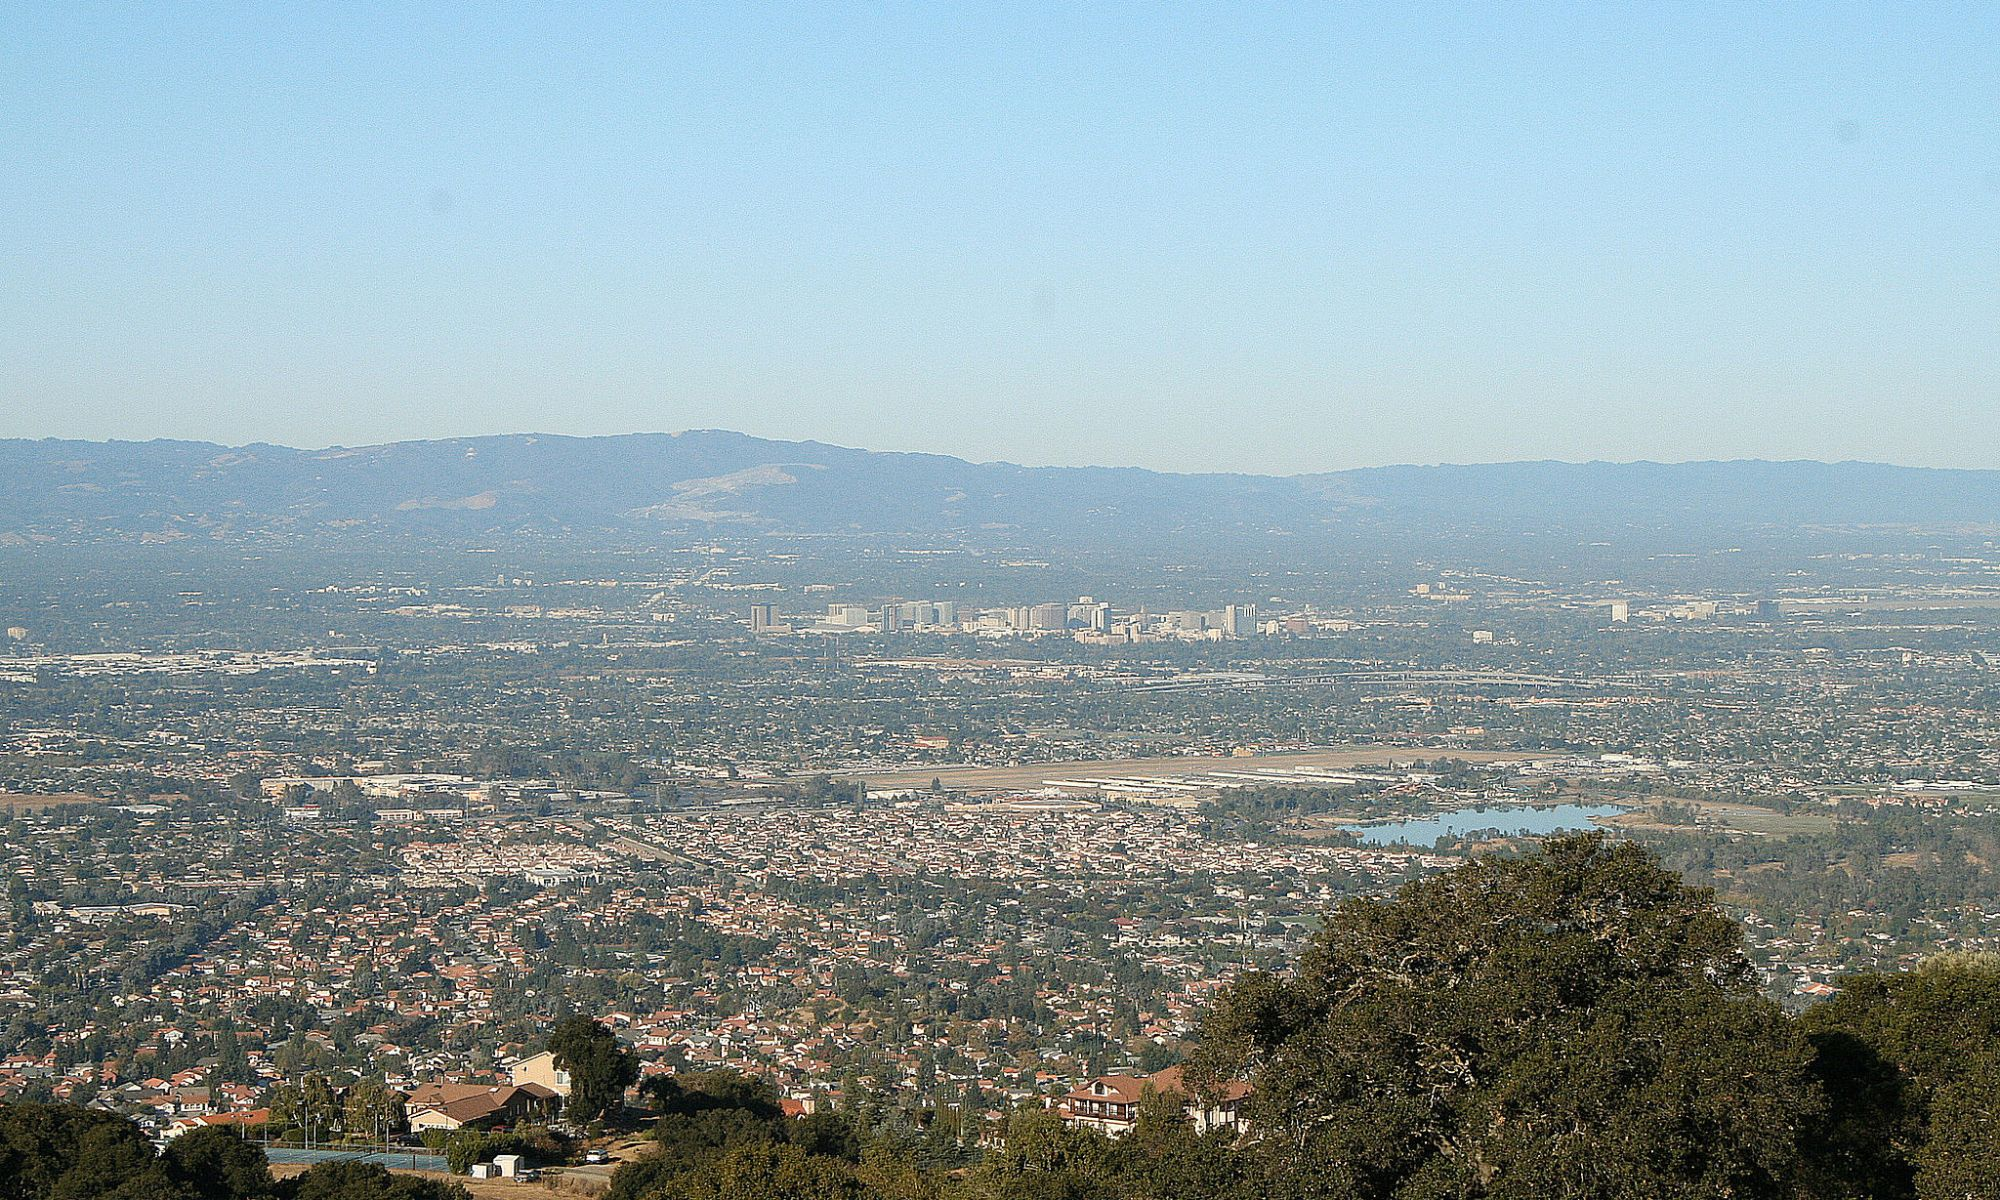 The Santa Clara Valley